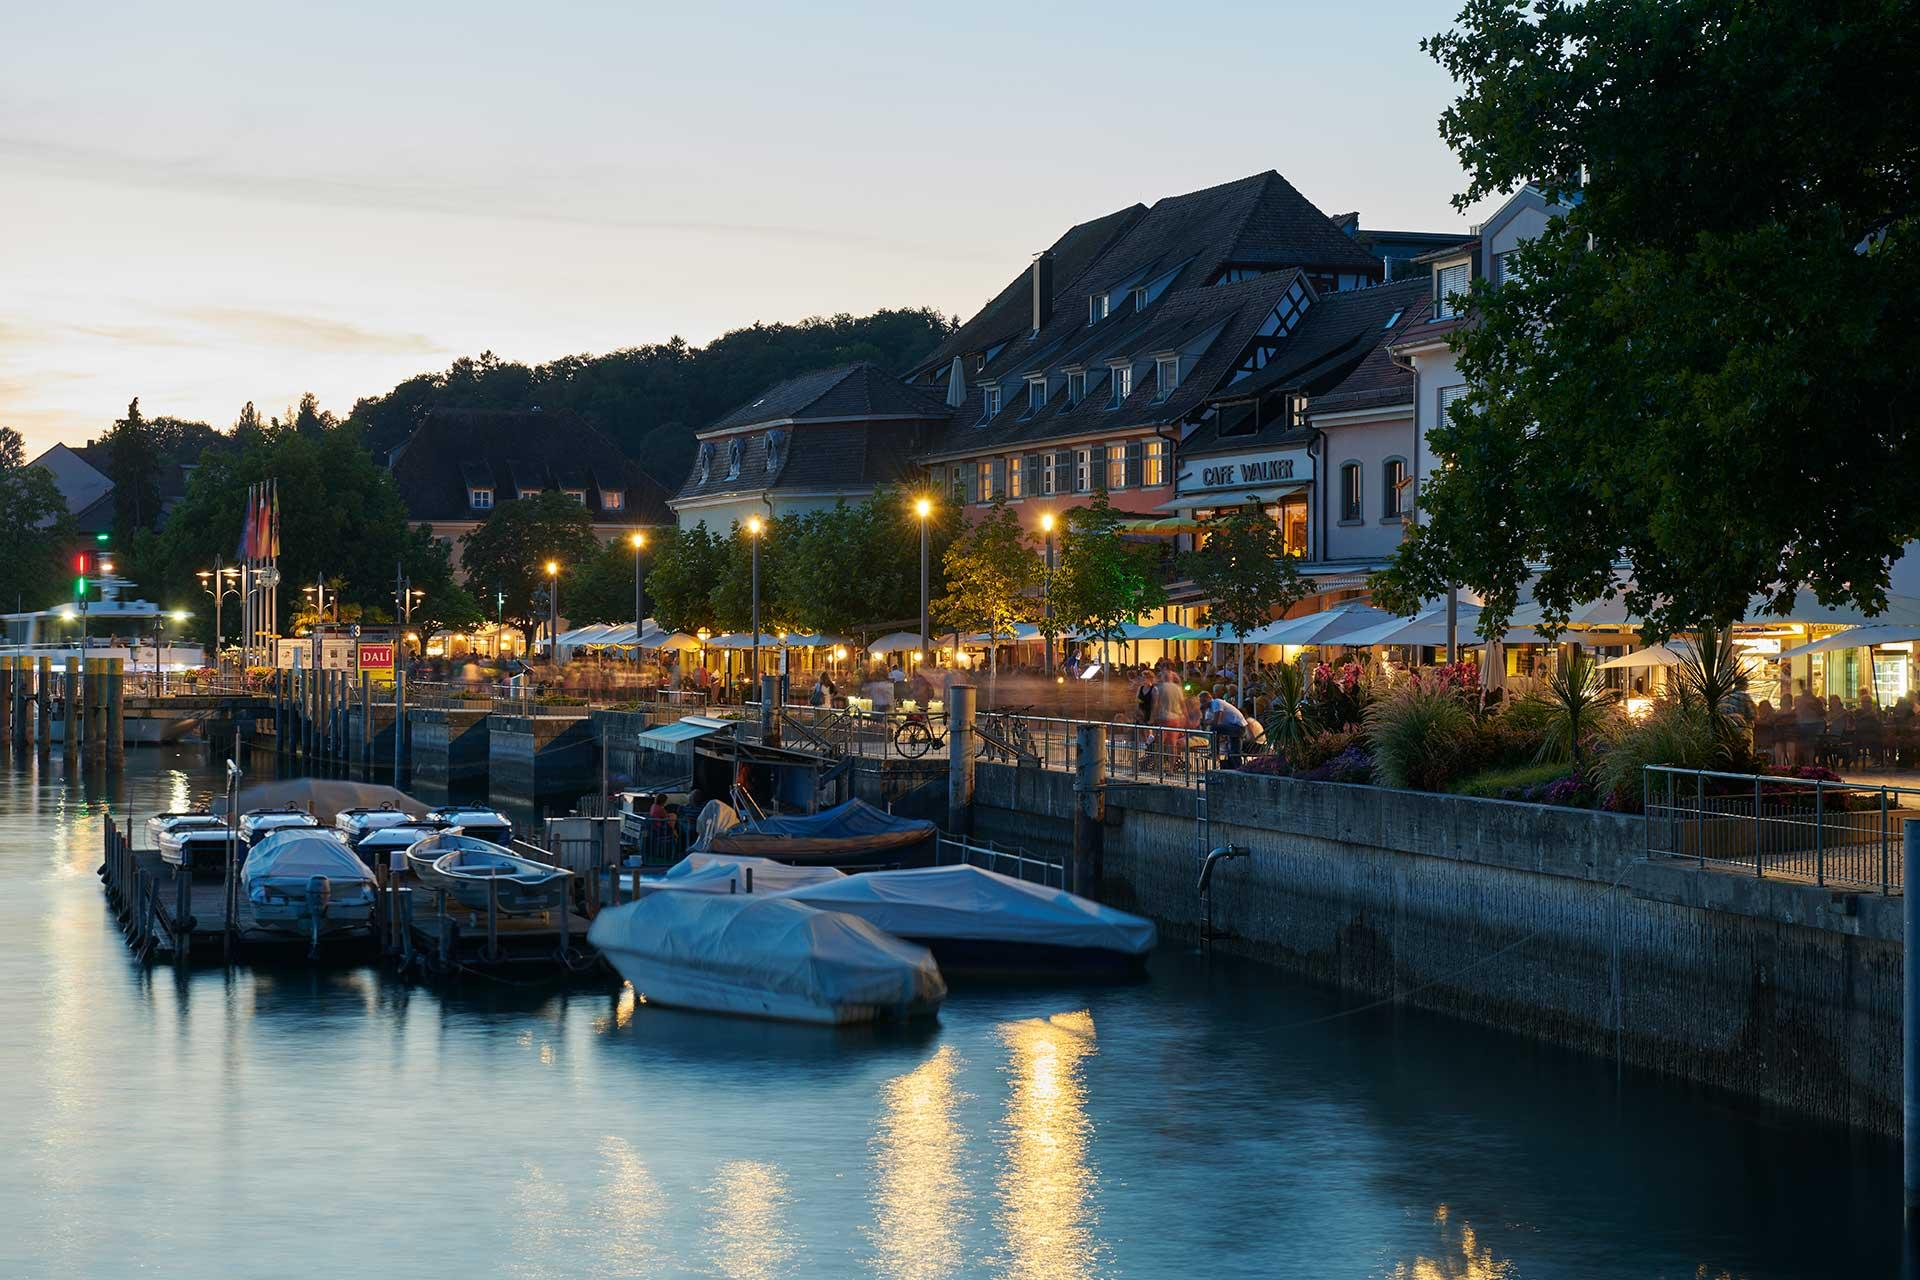 Shuffle lights Seepromenade to ensure safety for tourists while protecting Lake Constance from light pollution